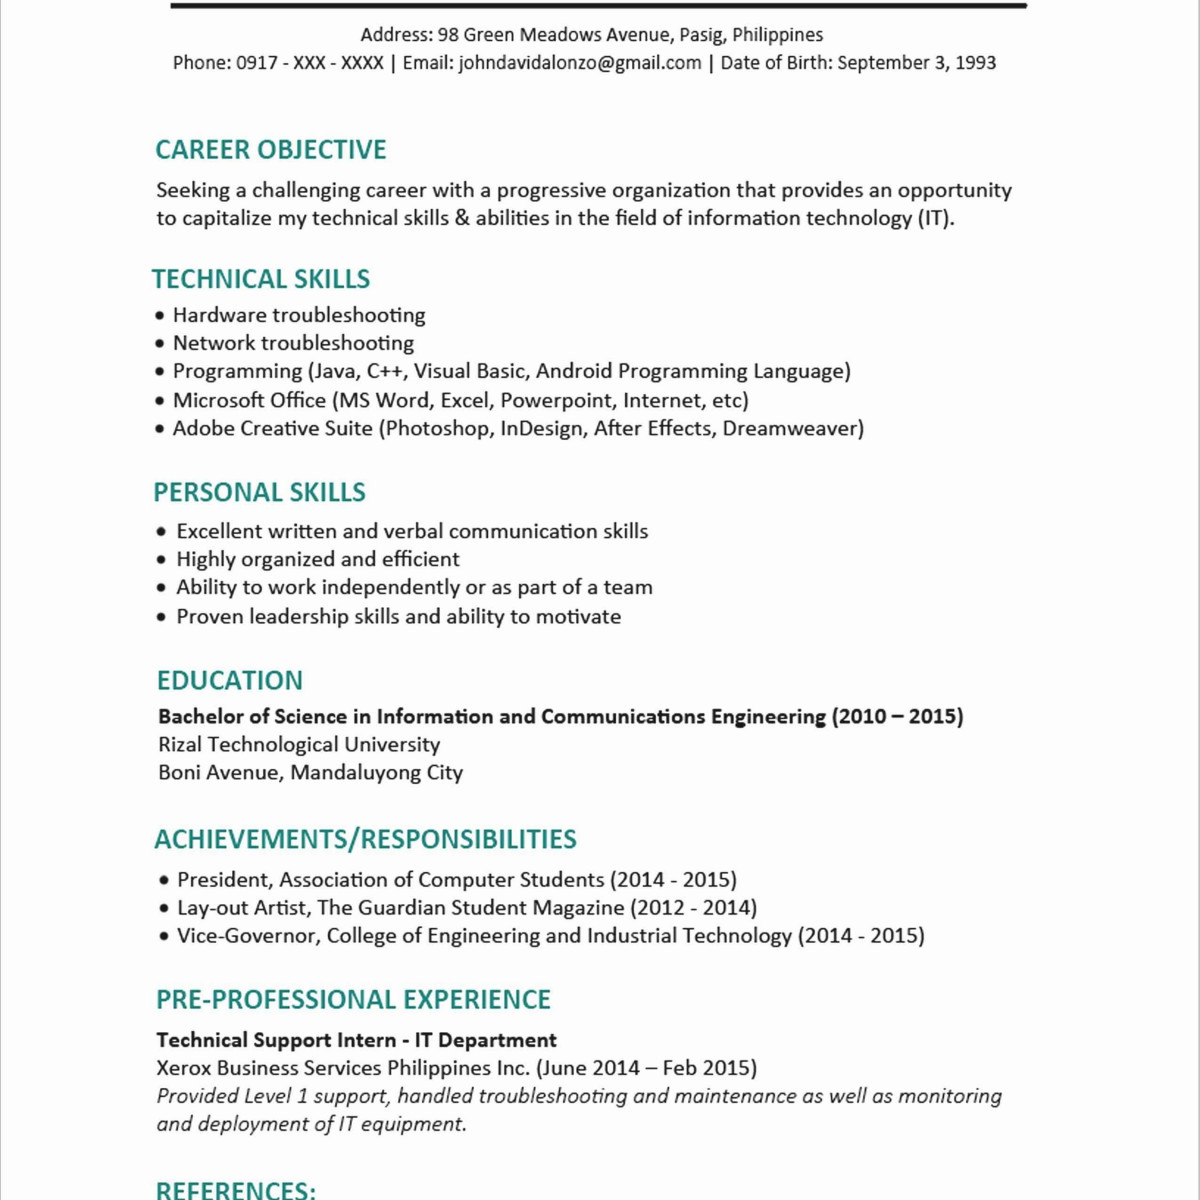 Resume Template Design Scholarship - 39 Cute College Scholarship Resume V5s